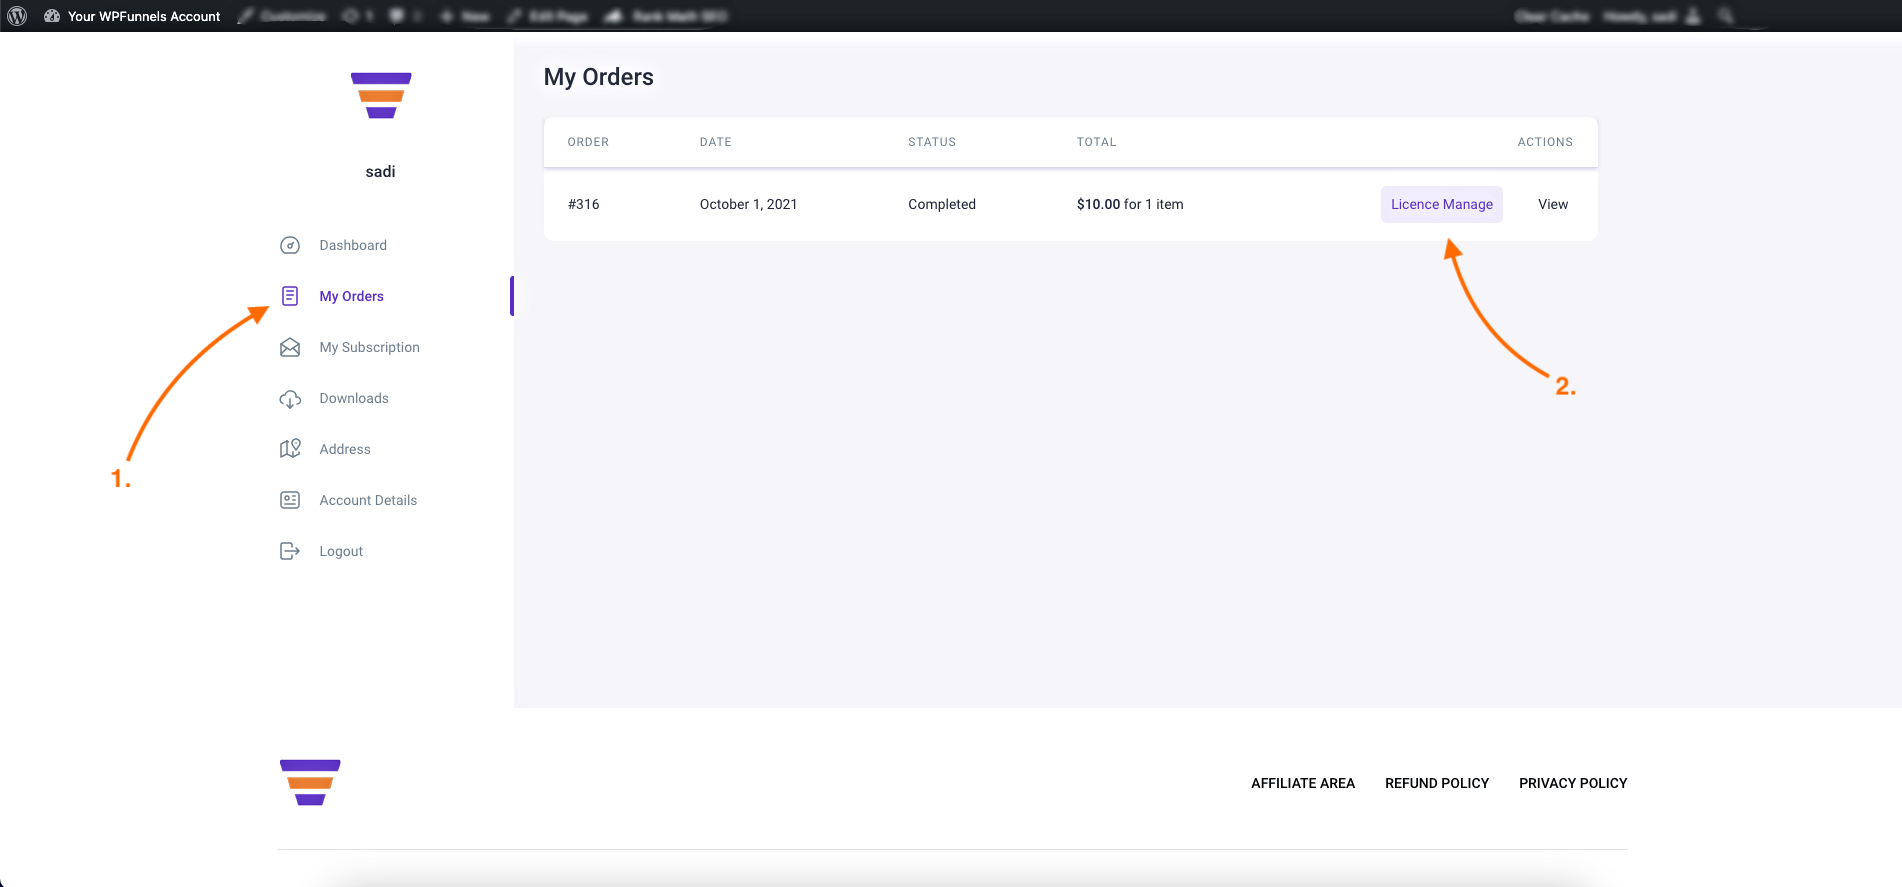 My Orders page